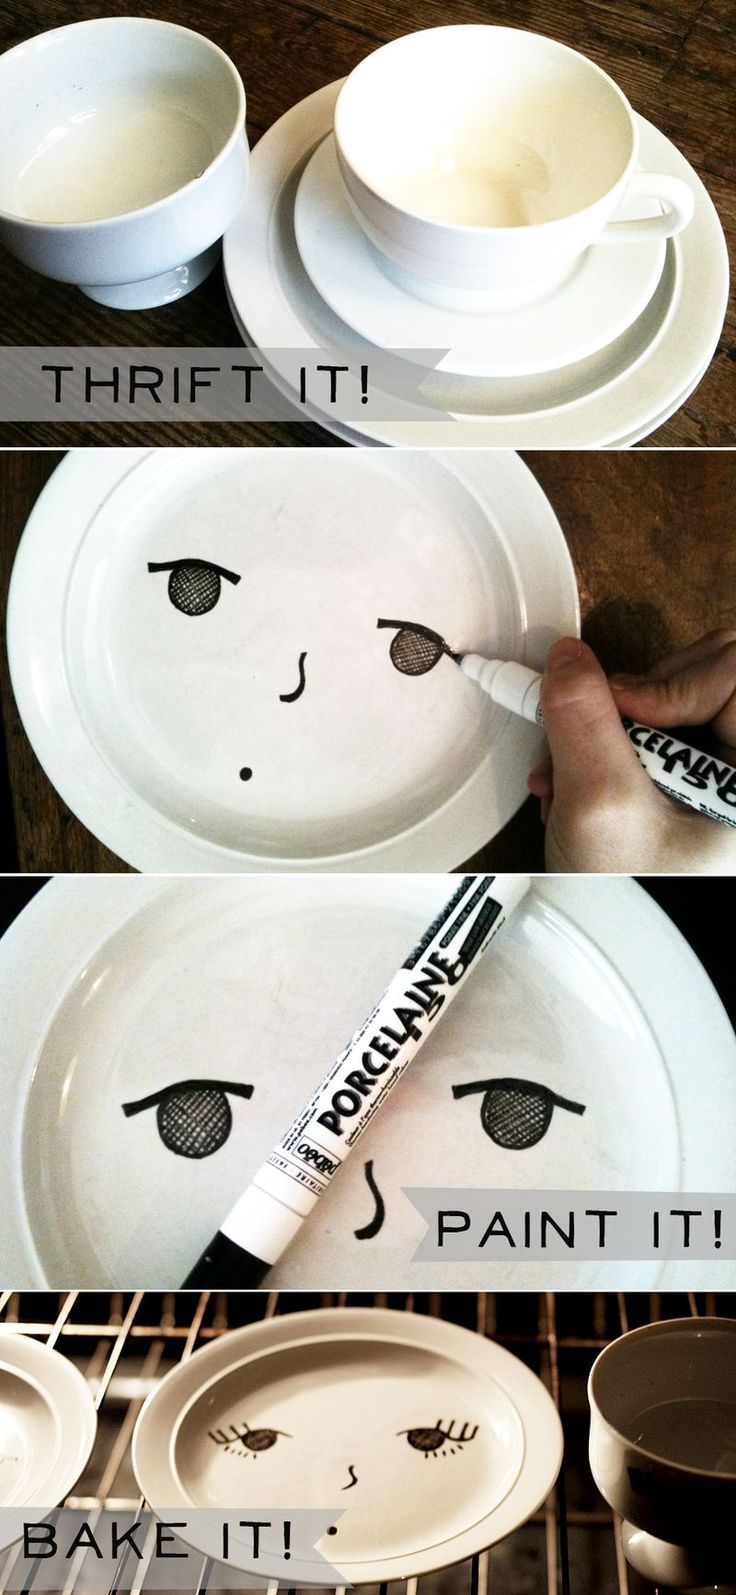 Plates with Pebeo Porcelaine paint